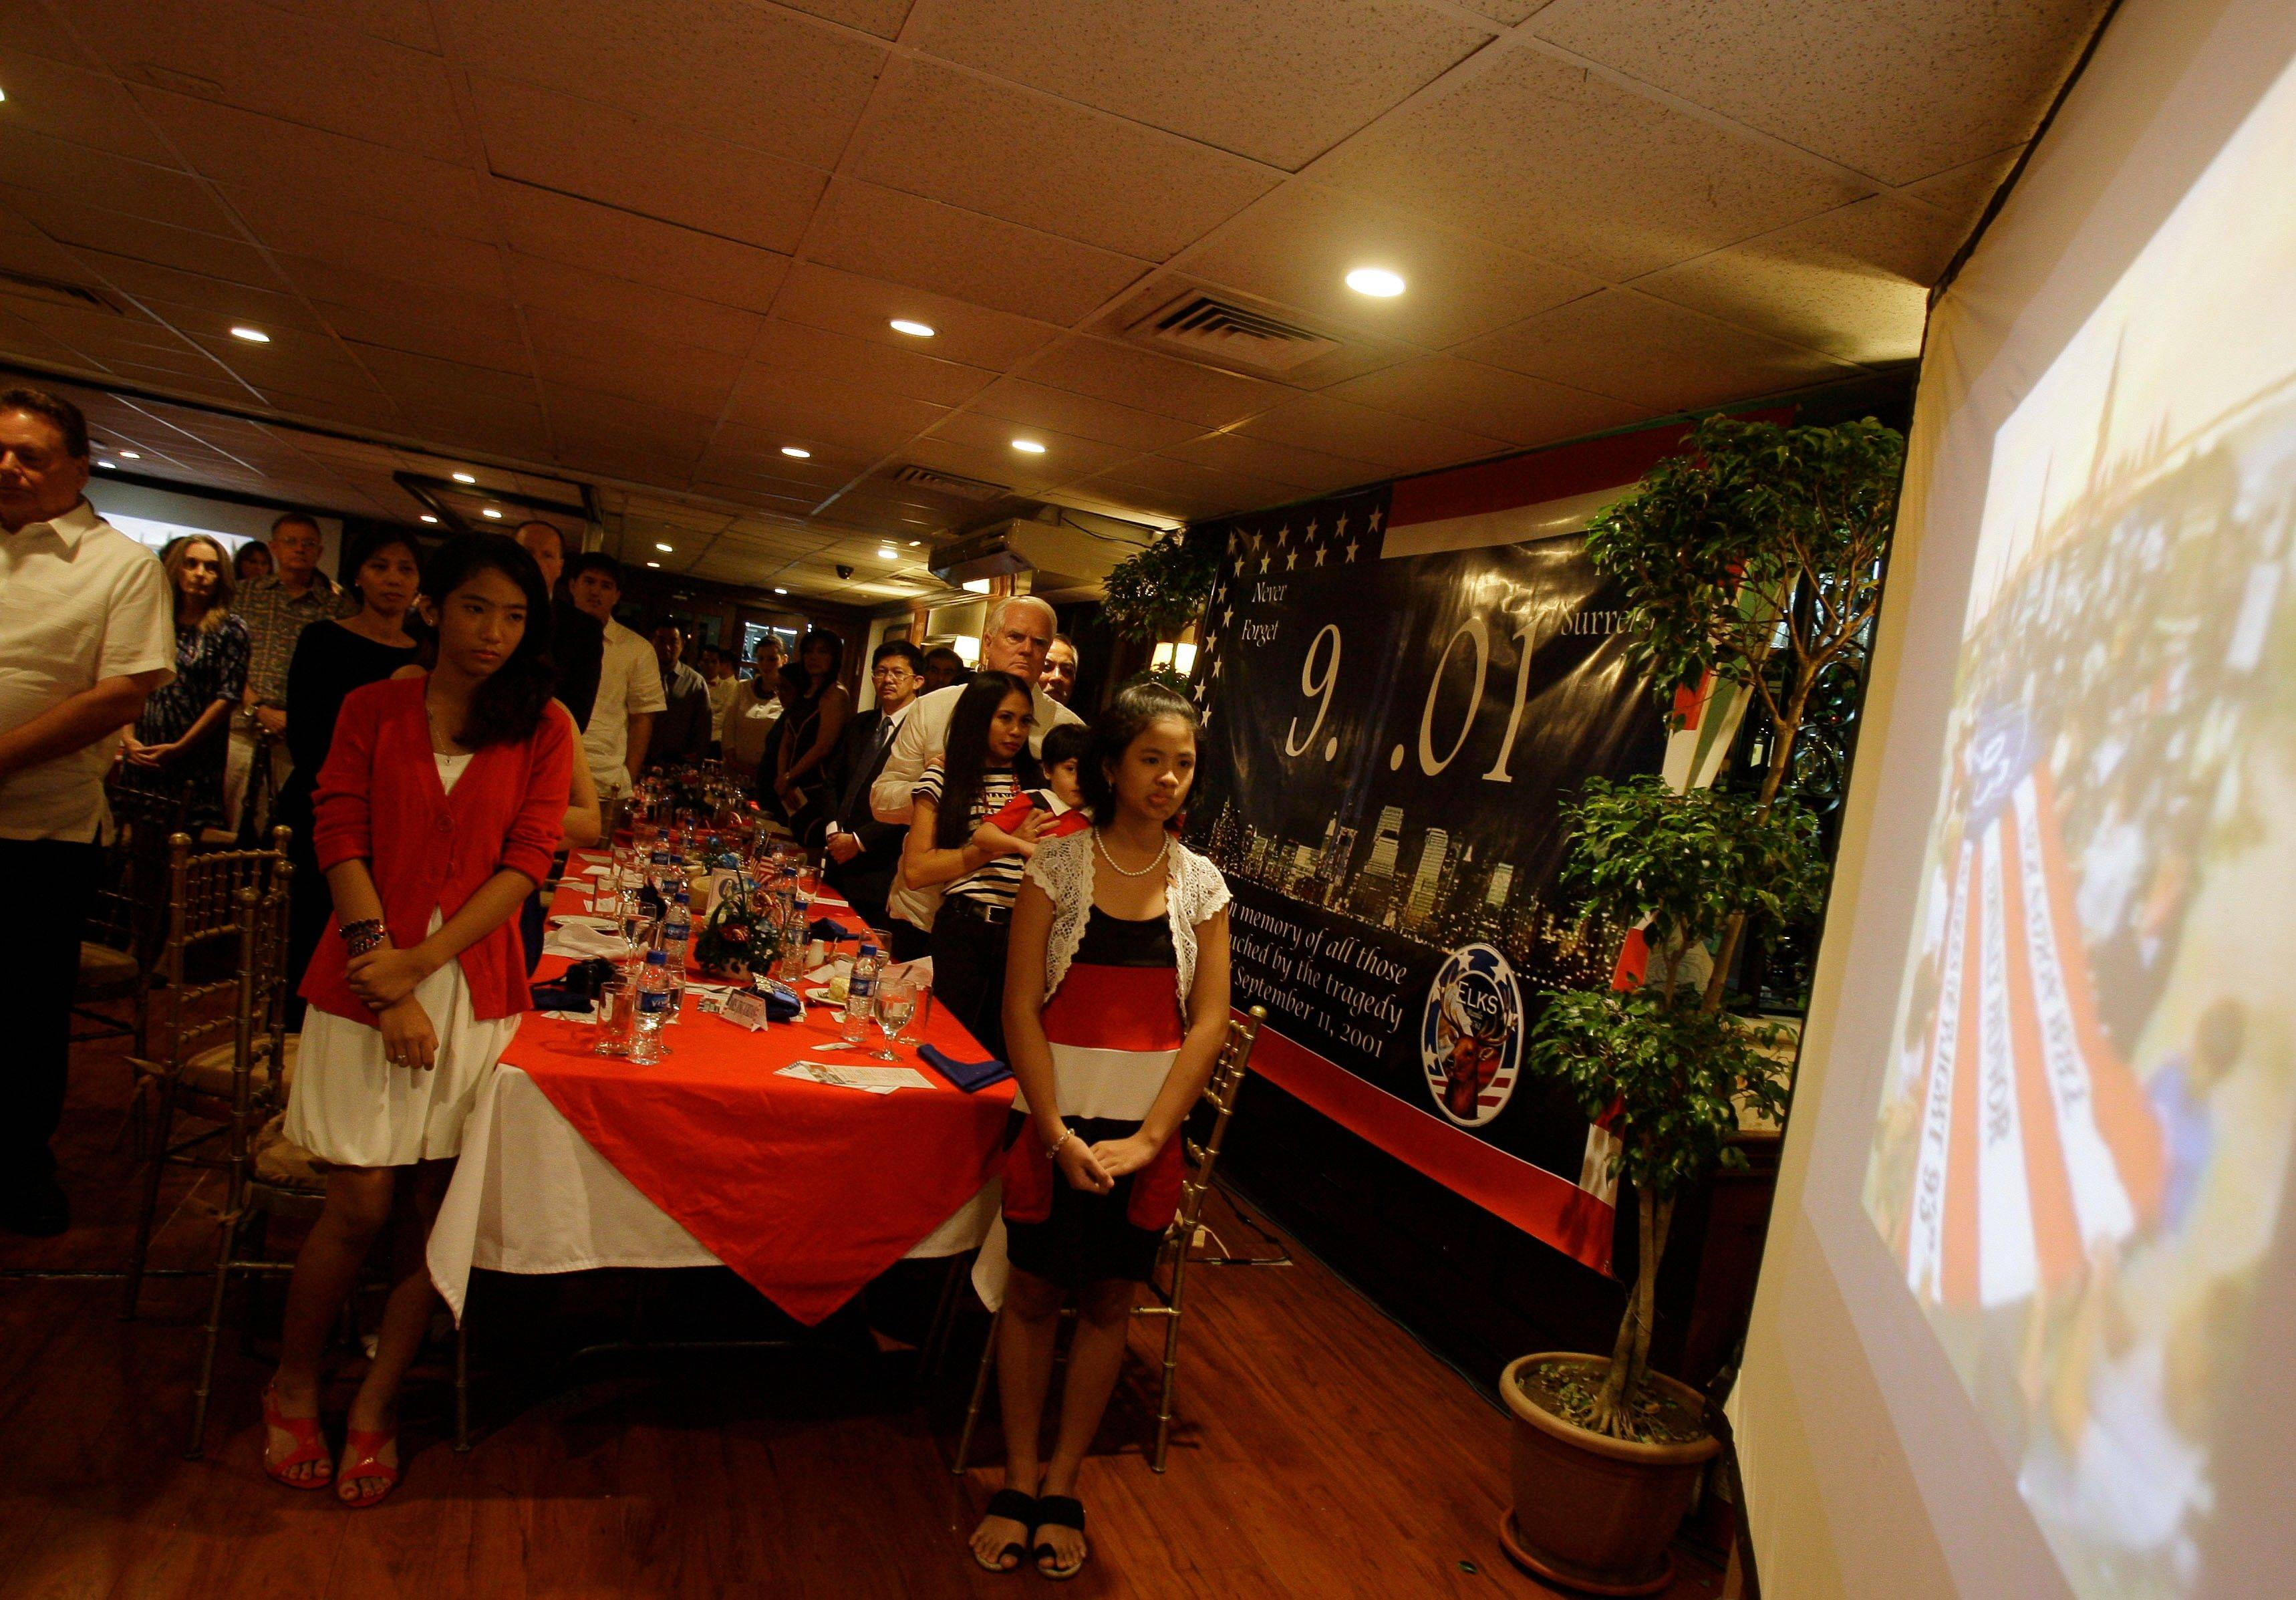 Guests stand during a gathering to mark the 10th anniversary of the Sept. 11 terror attacks in suburban Makati, south of Manila, Philippines Sunday Sept. 11, 2011. The group offered prayers for victims and viewed an exhibit about the attacks.